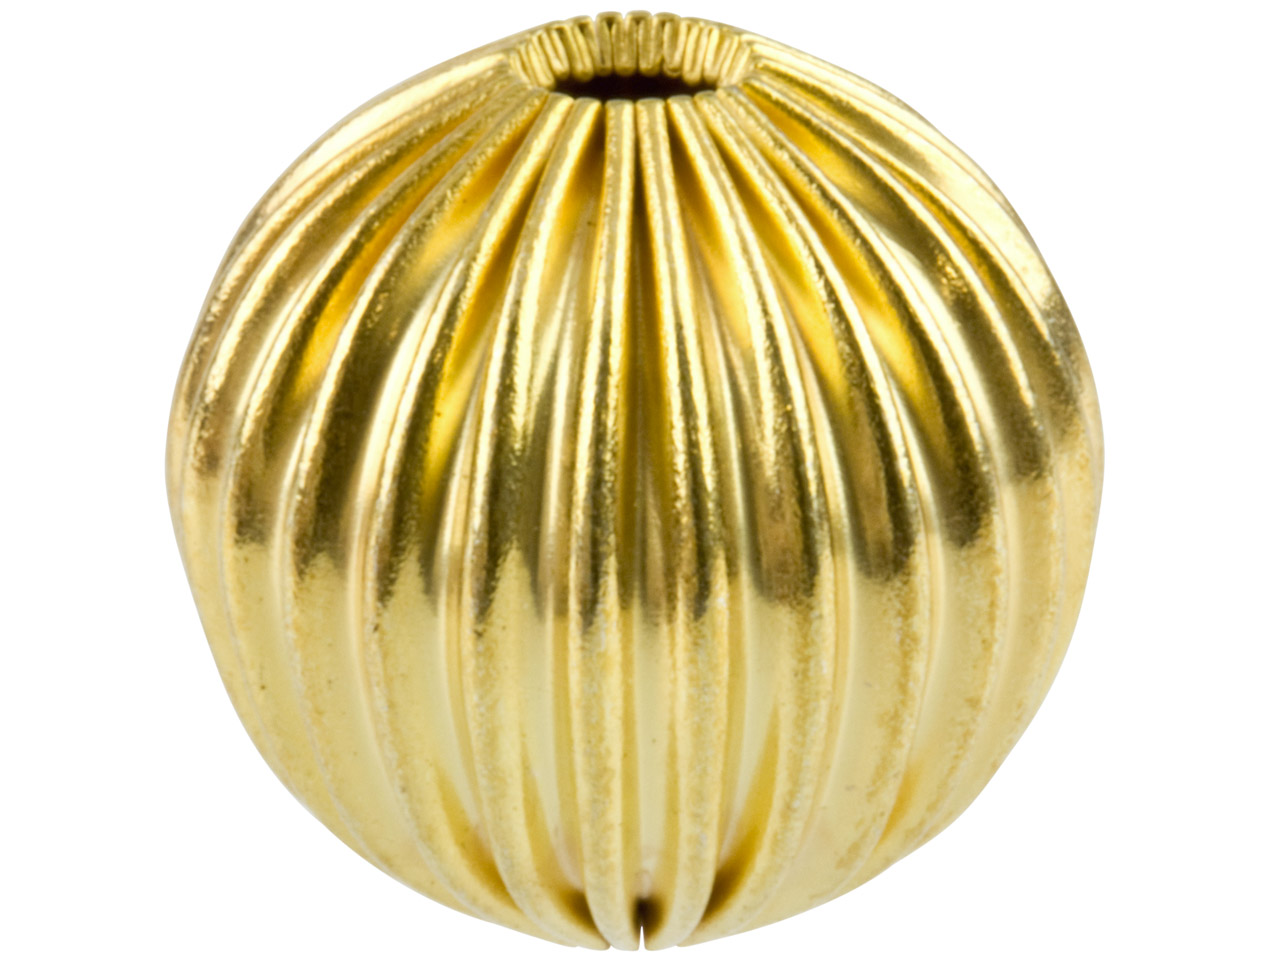 Gold Plated Corrugated Round Beads 10mm, 2 Hole, Pack of 6